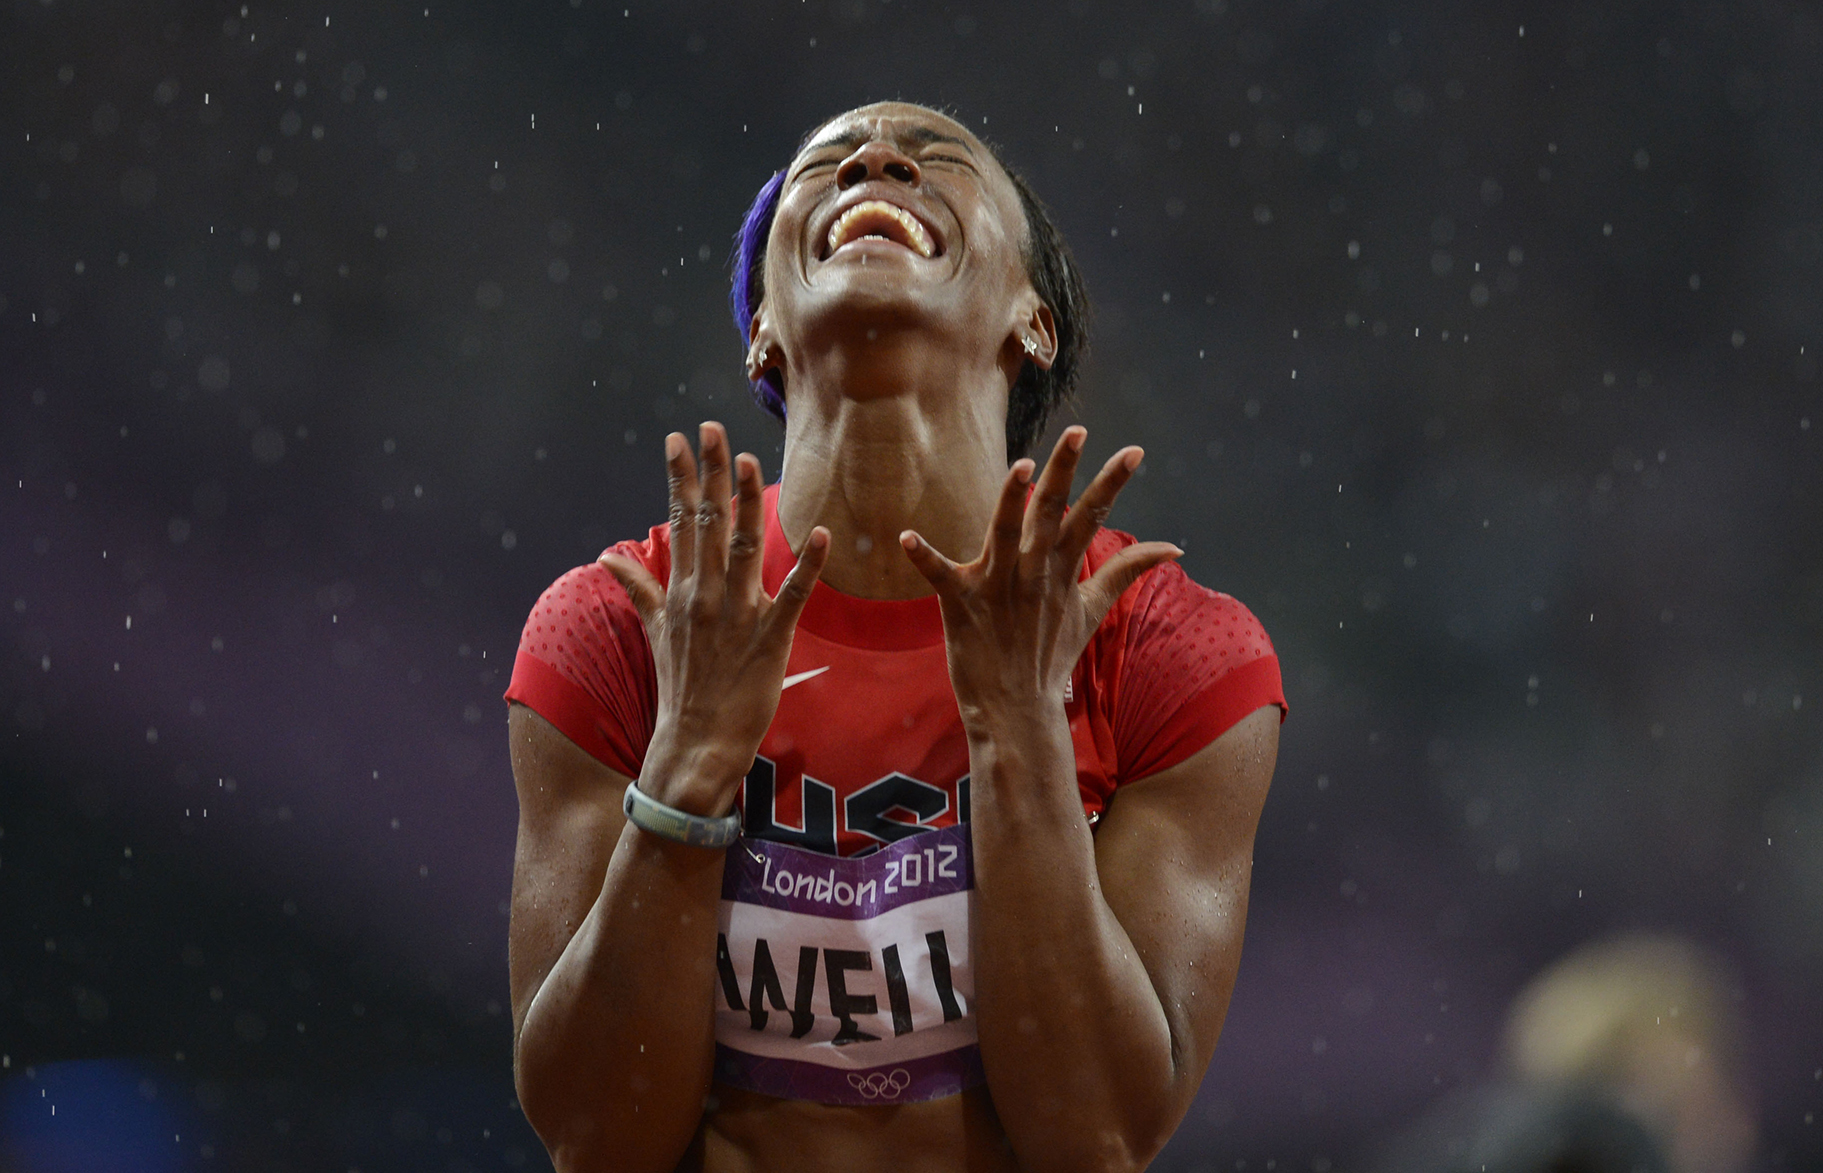 Aug 7, 2012; London, United Kingdom; Kellie Wells (USA) celebrates after winning the bronze in the women's 100m hurdles final during the London 2012 Olympic Games at Olympic Stadium. Mandatory Credit: John David Mercer-USA TODAY Sports